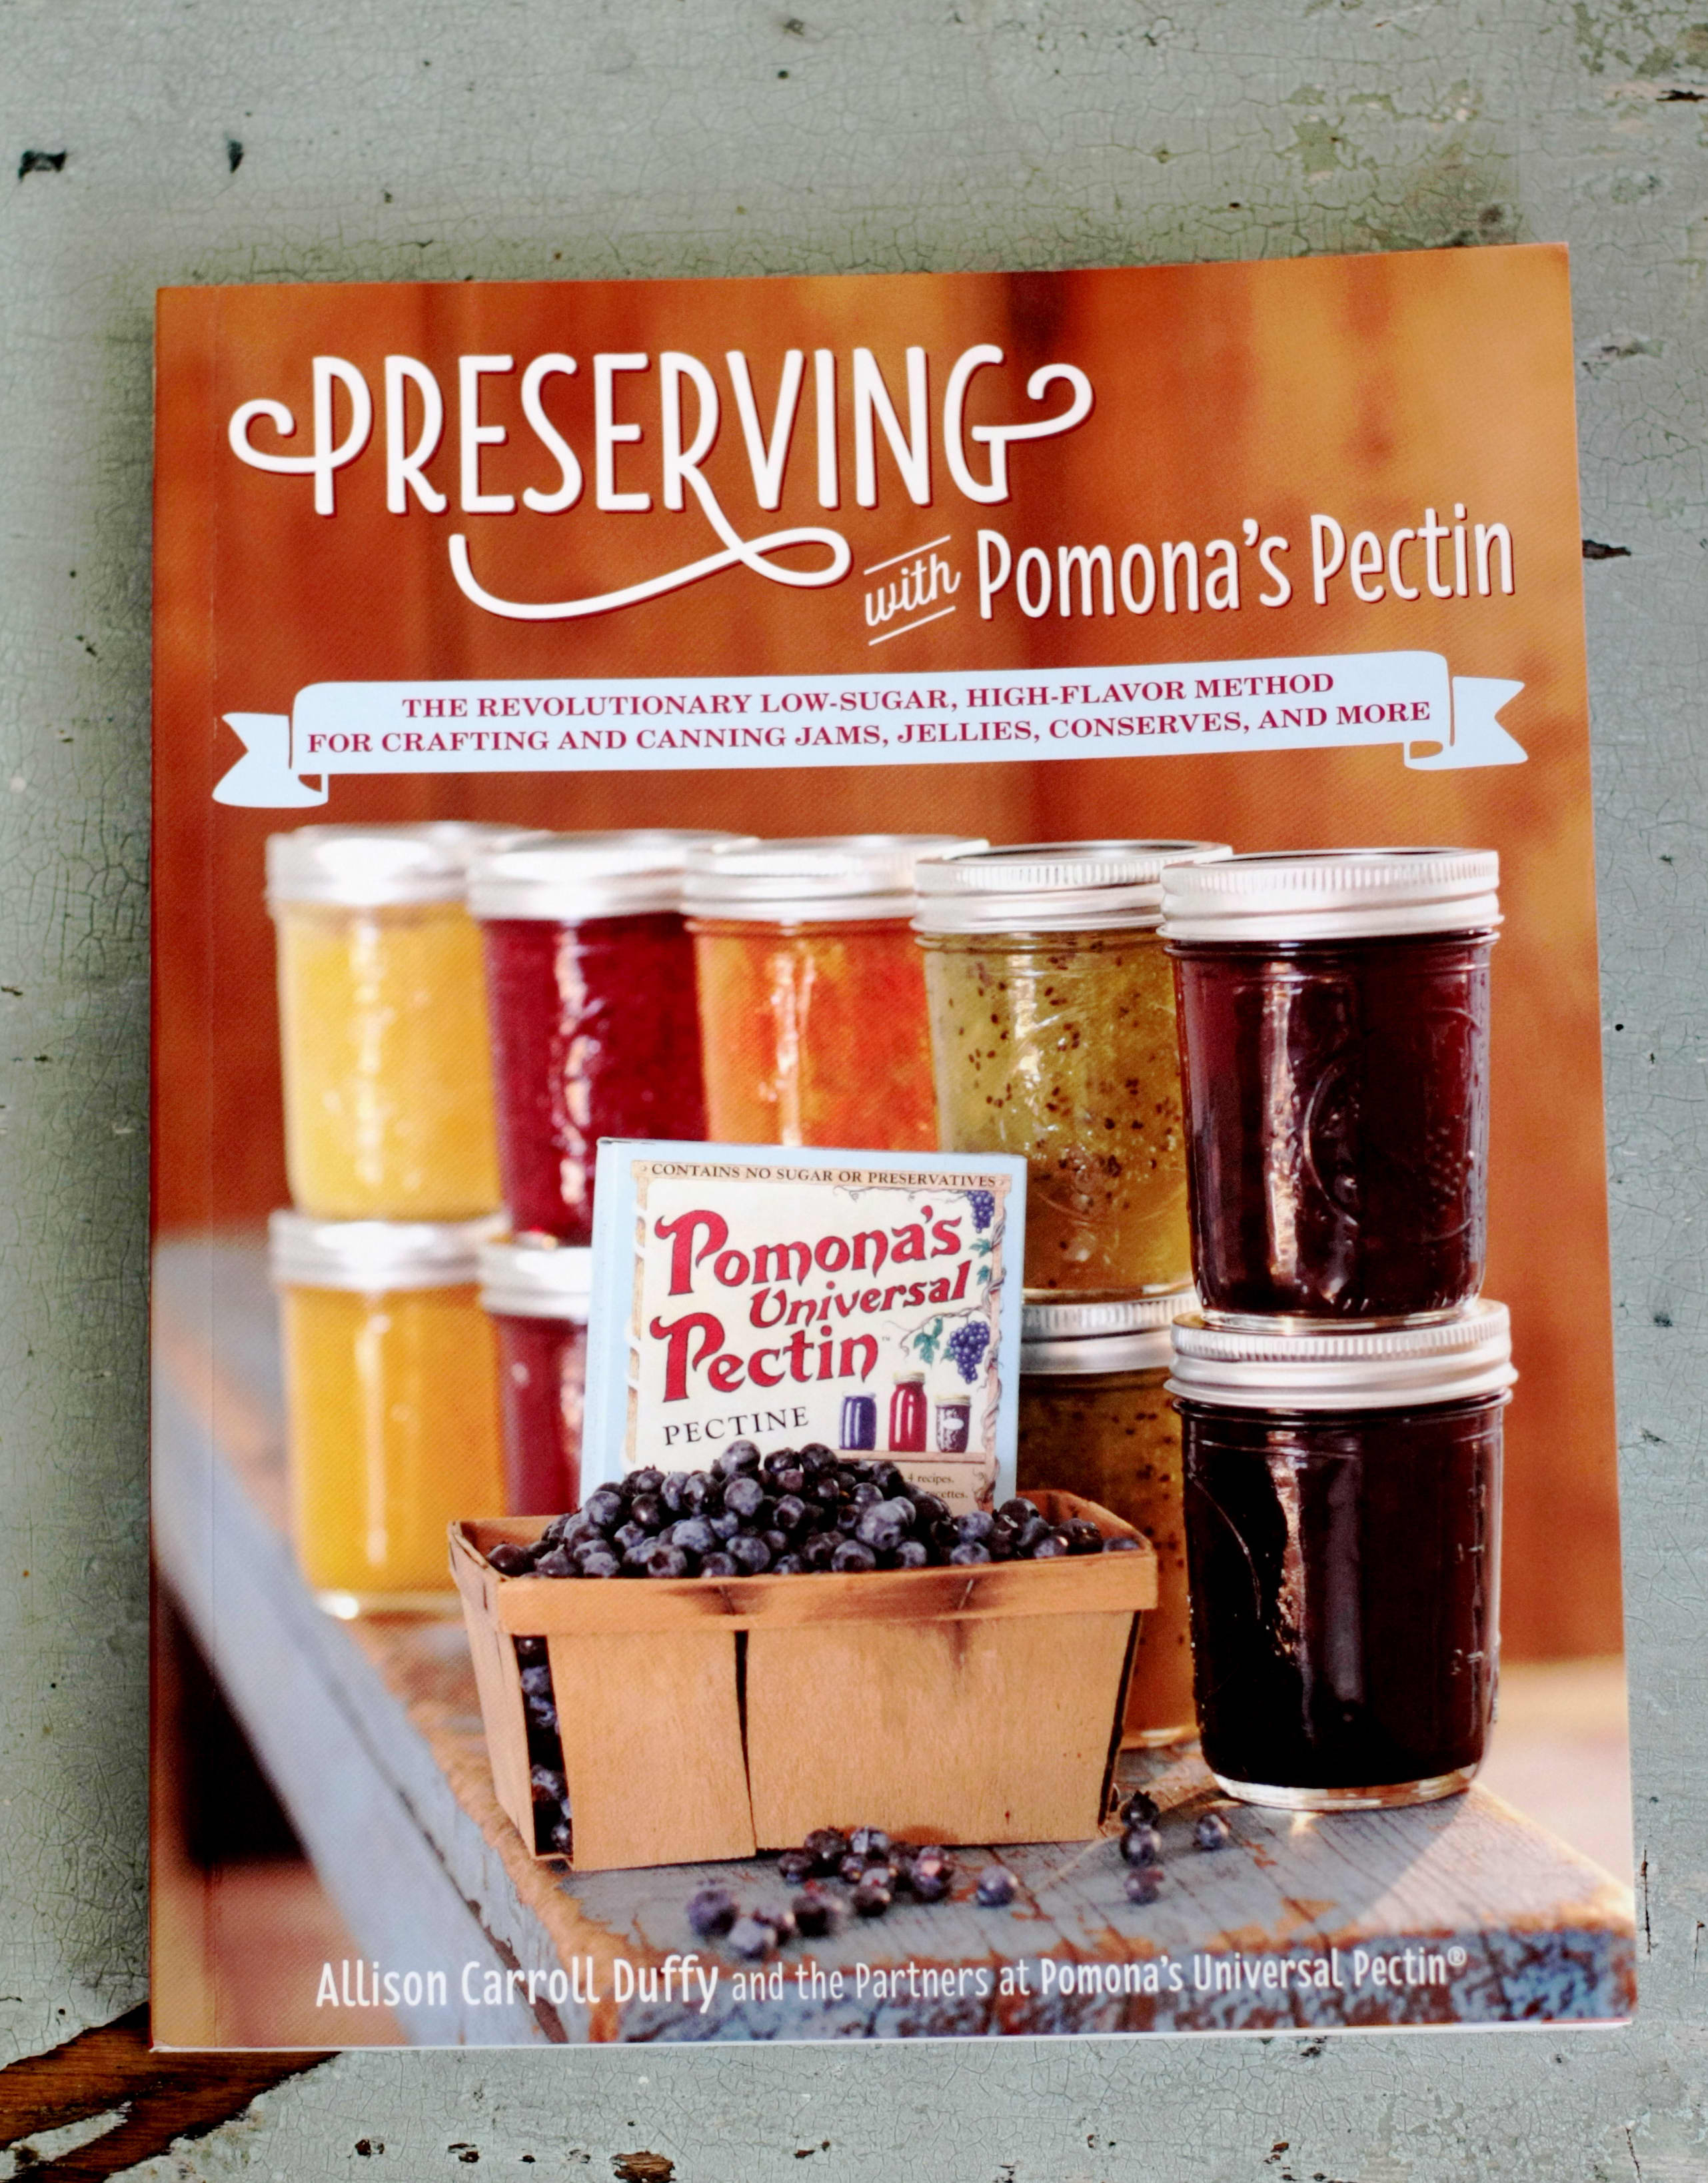 Preserving with Pomona's Pectin by Allison Carroll Duffy